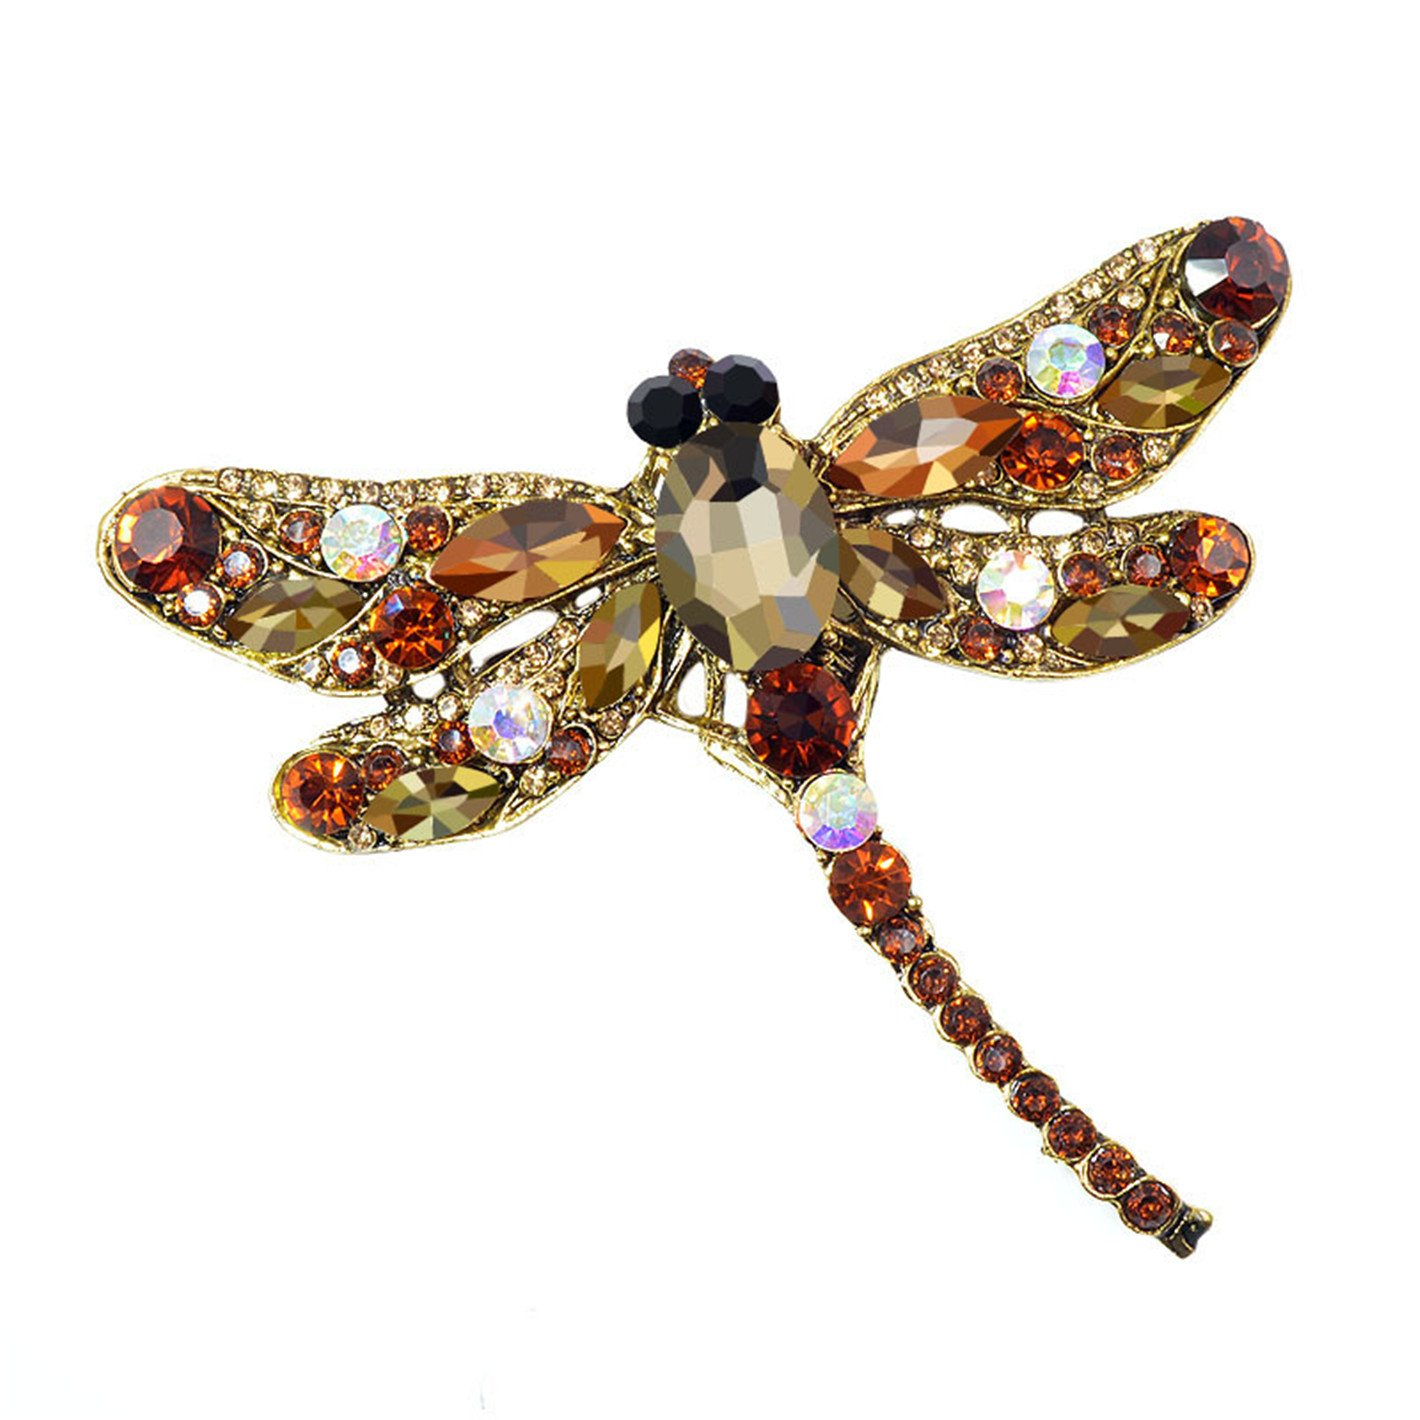 Crystal Vintage Dragonfly Brooches for Women Large Insect Brooch Pin Fashion Dress Coat Accessories Cute